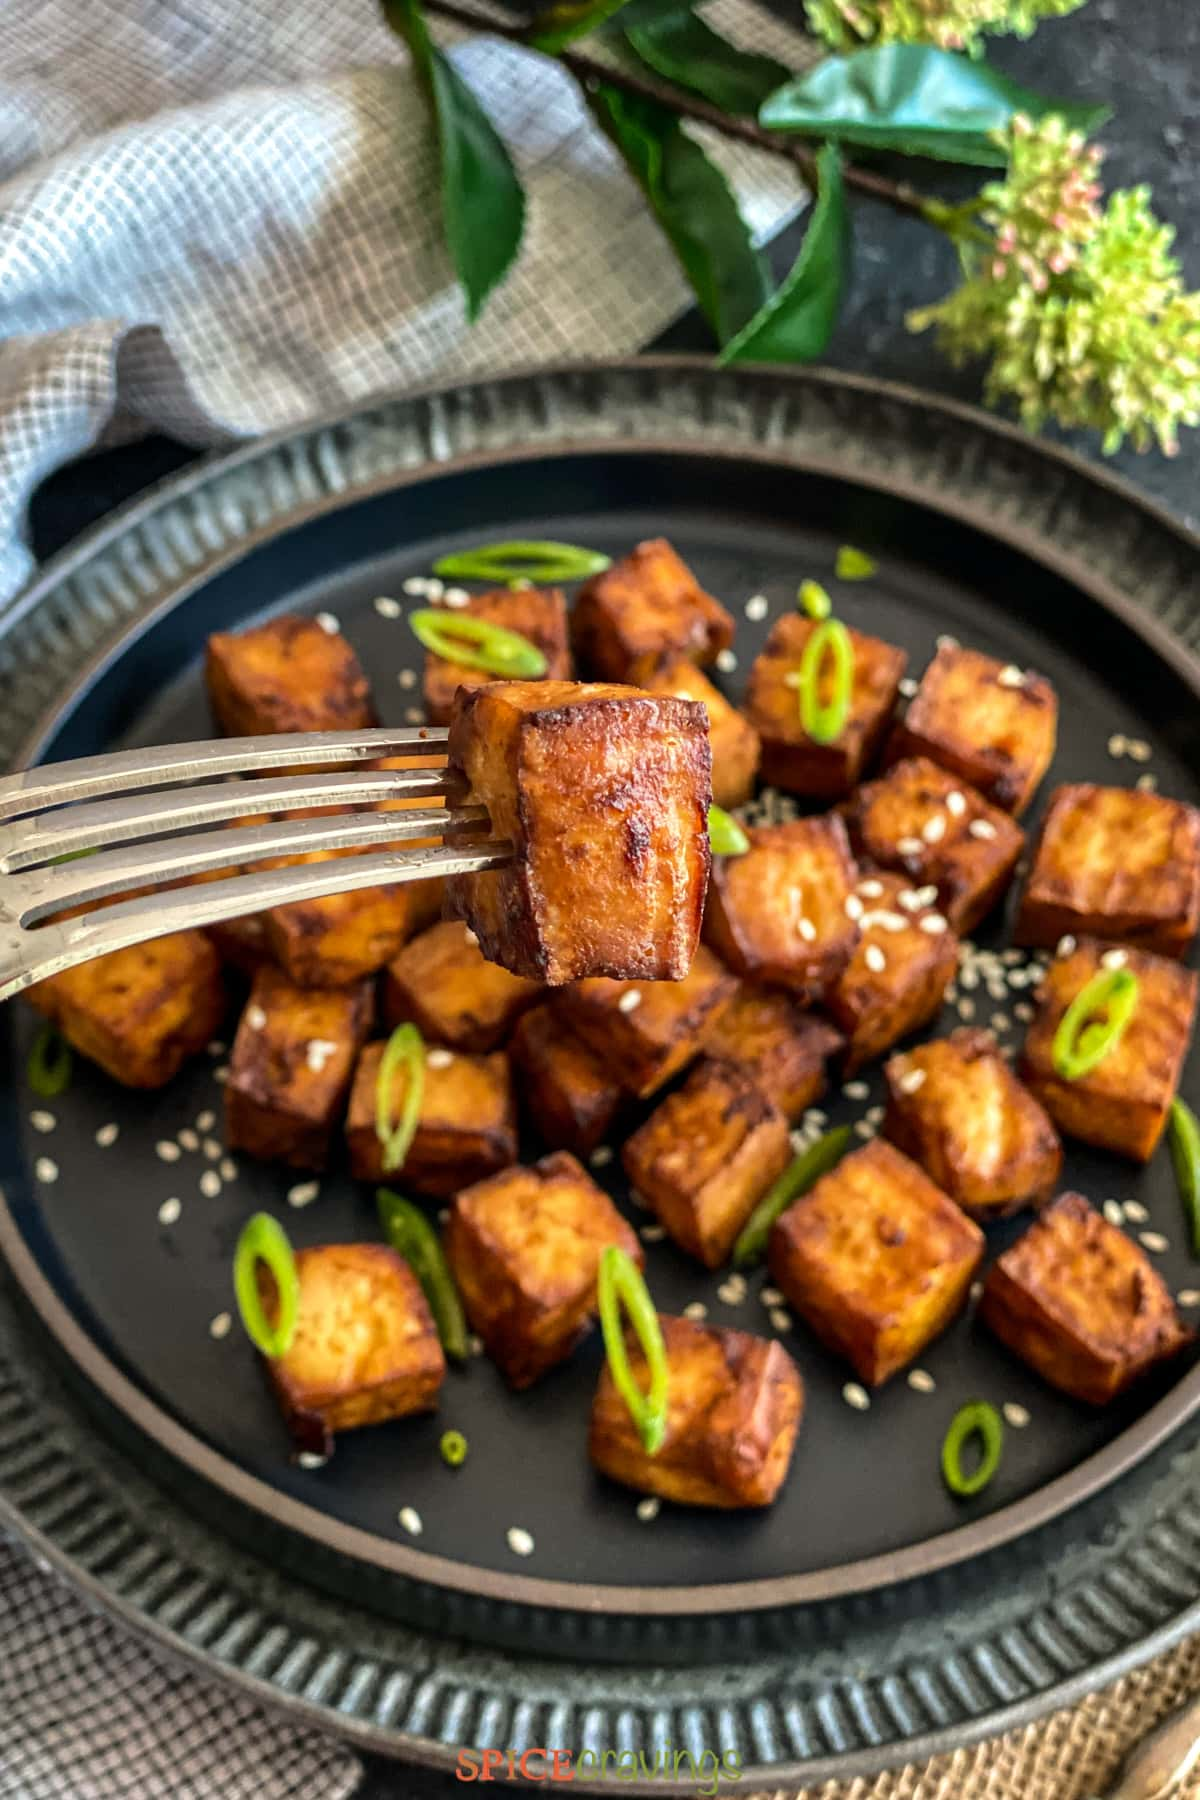 A fork lifting a cube of marinated air fryer tofu from a plate